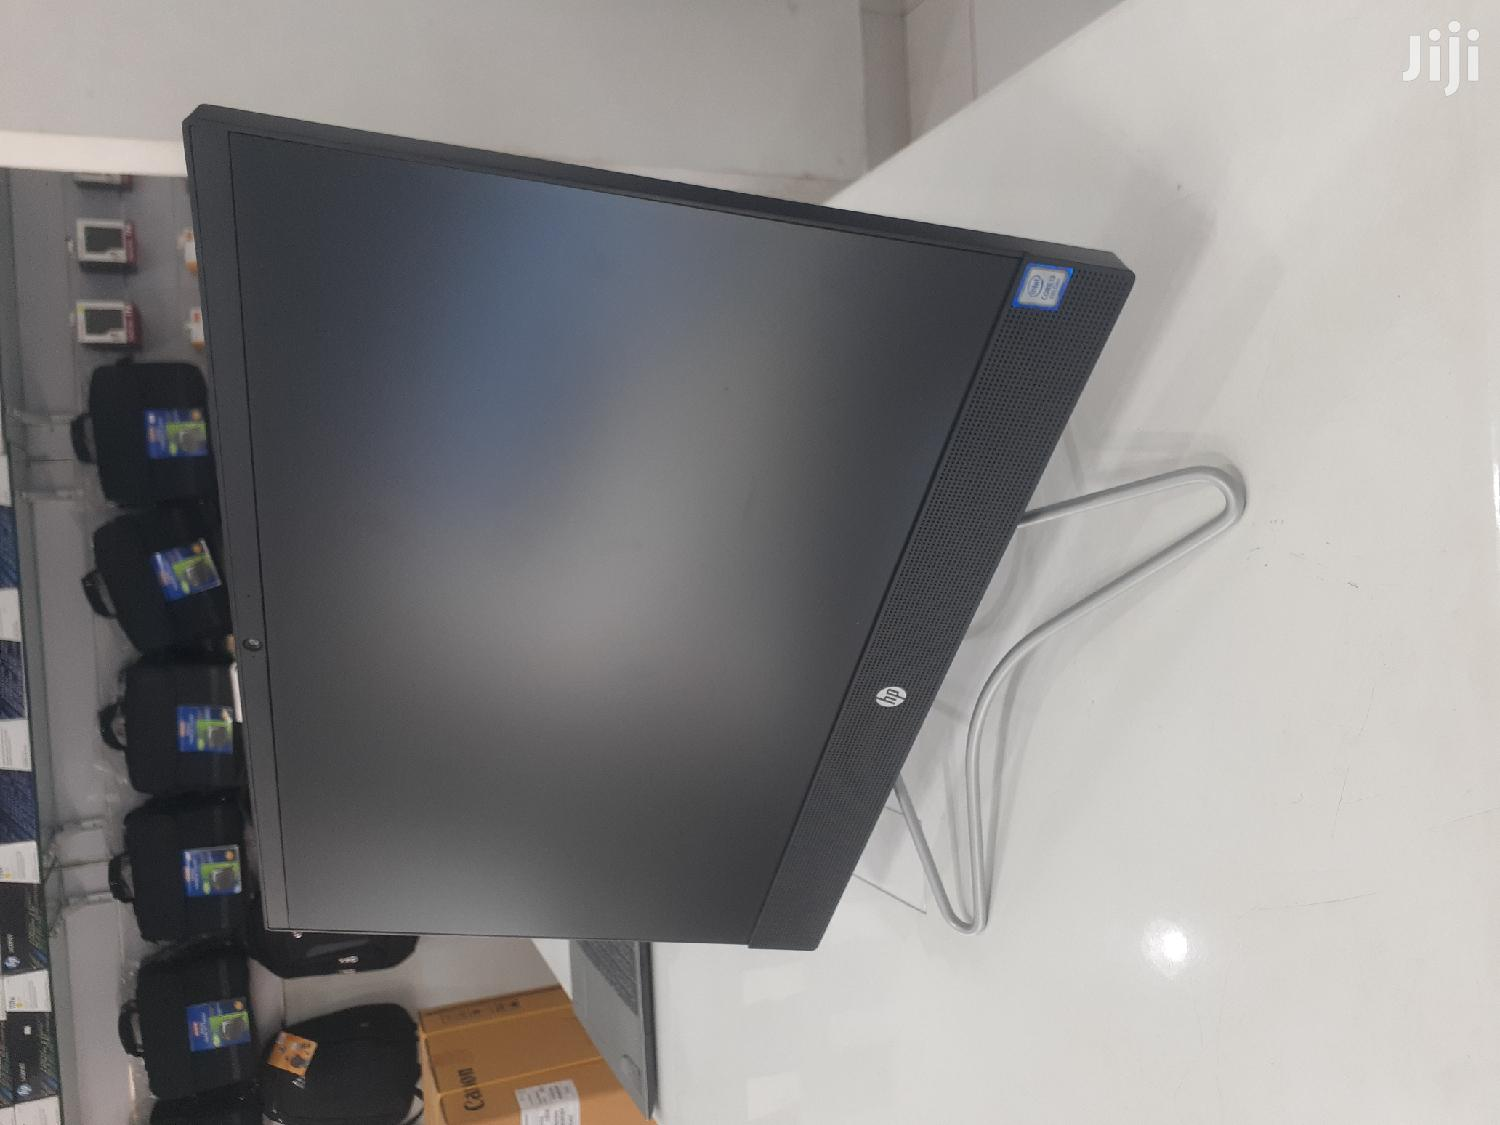 New Desktop Computer HP AiO 24 8GB Intel Core I5 HDD 1T | Laptops & Computers for sale in Kokomlemle, Greater Accra, Ghana